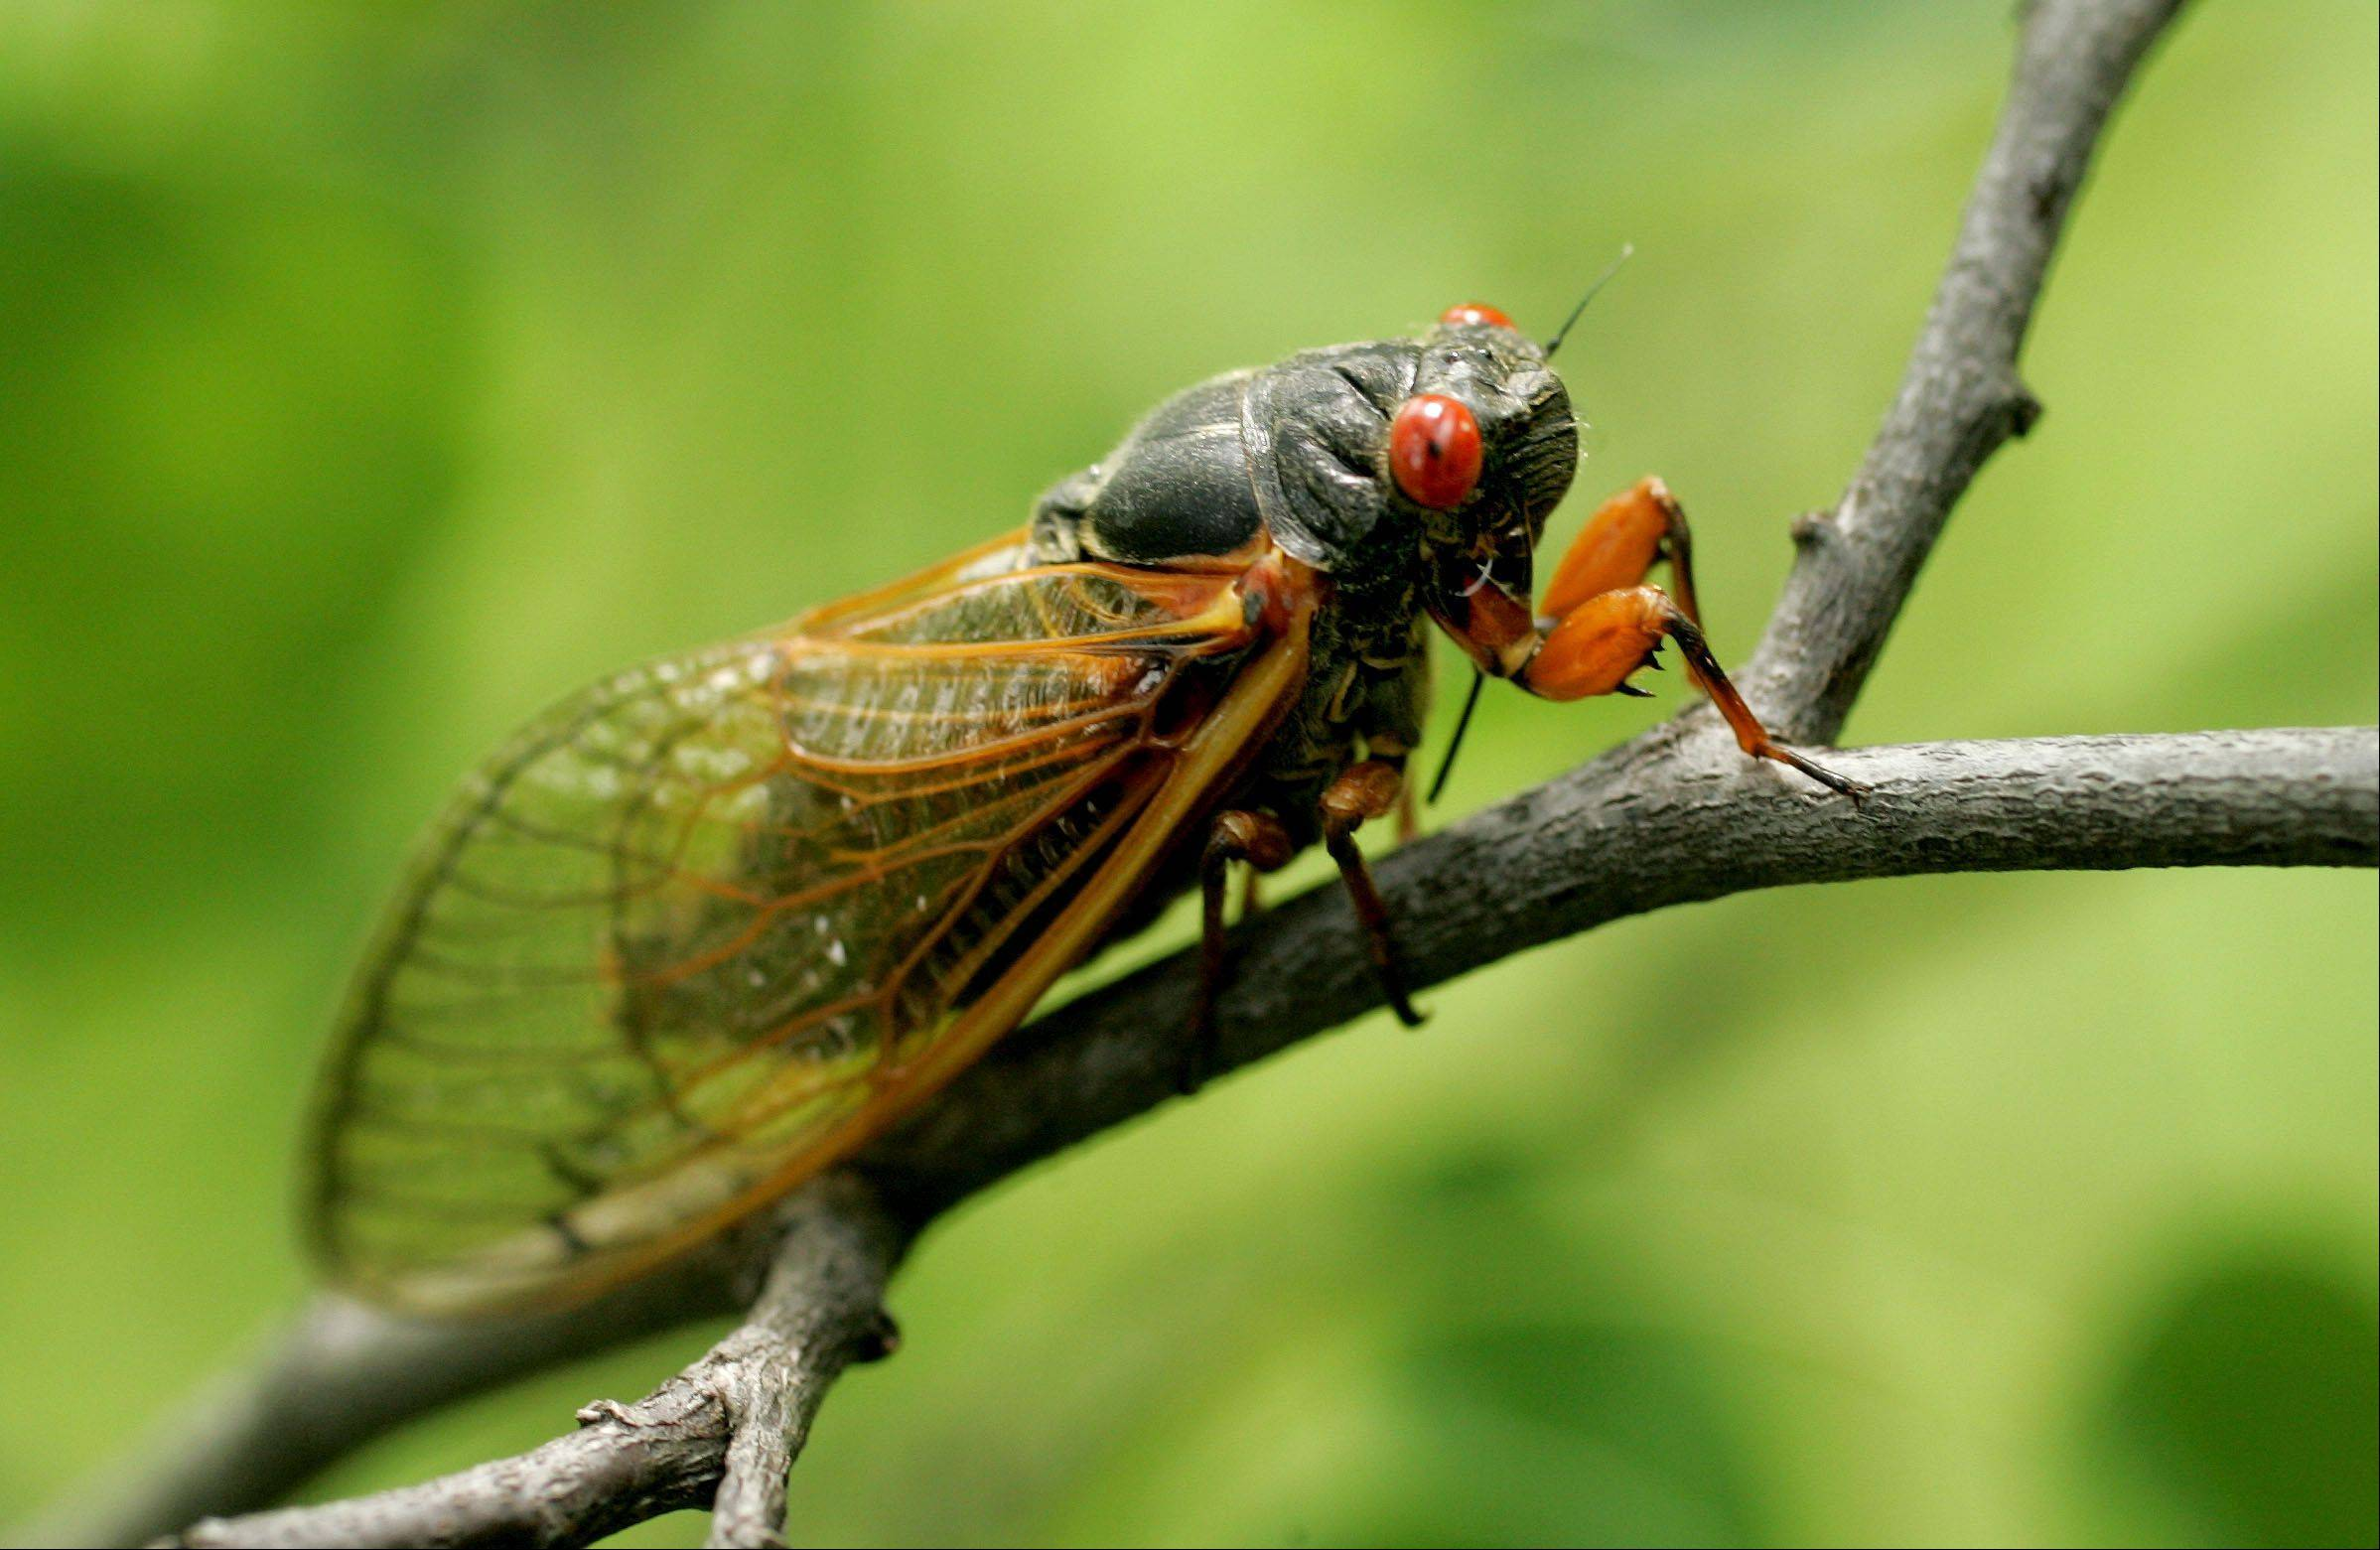 This summer's cicadas have been louder than normal, entomologists say. Cicadas are noisiest during the day, and the crickets and katydids take over in the evening. The early evening is the loudest time because of the overlap.